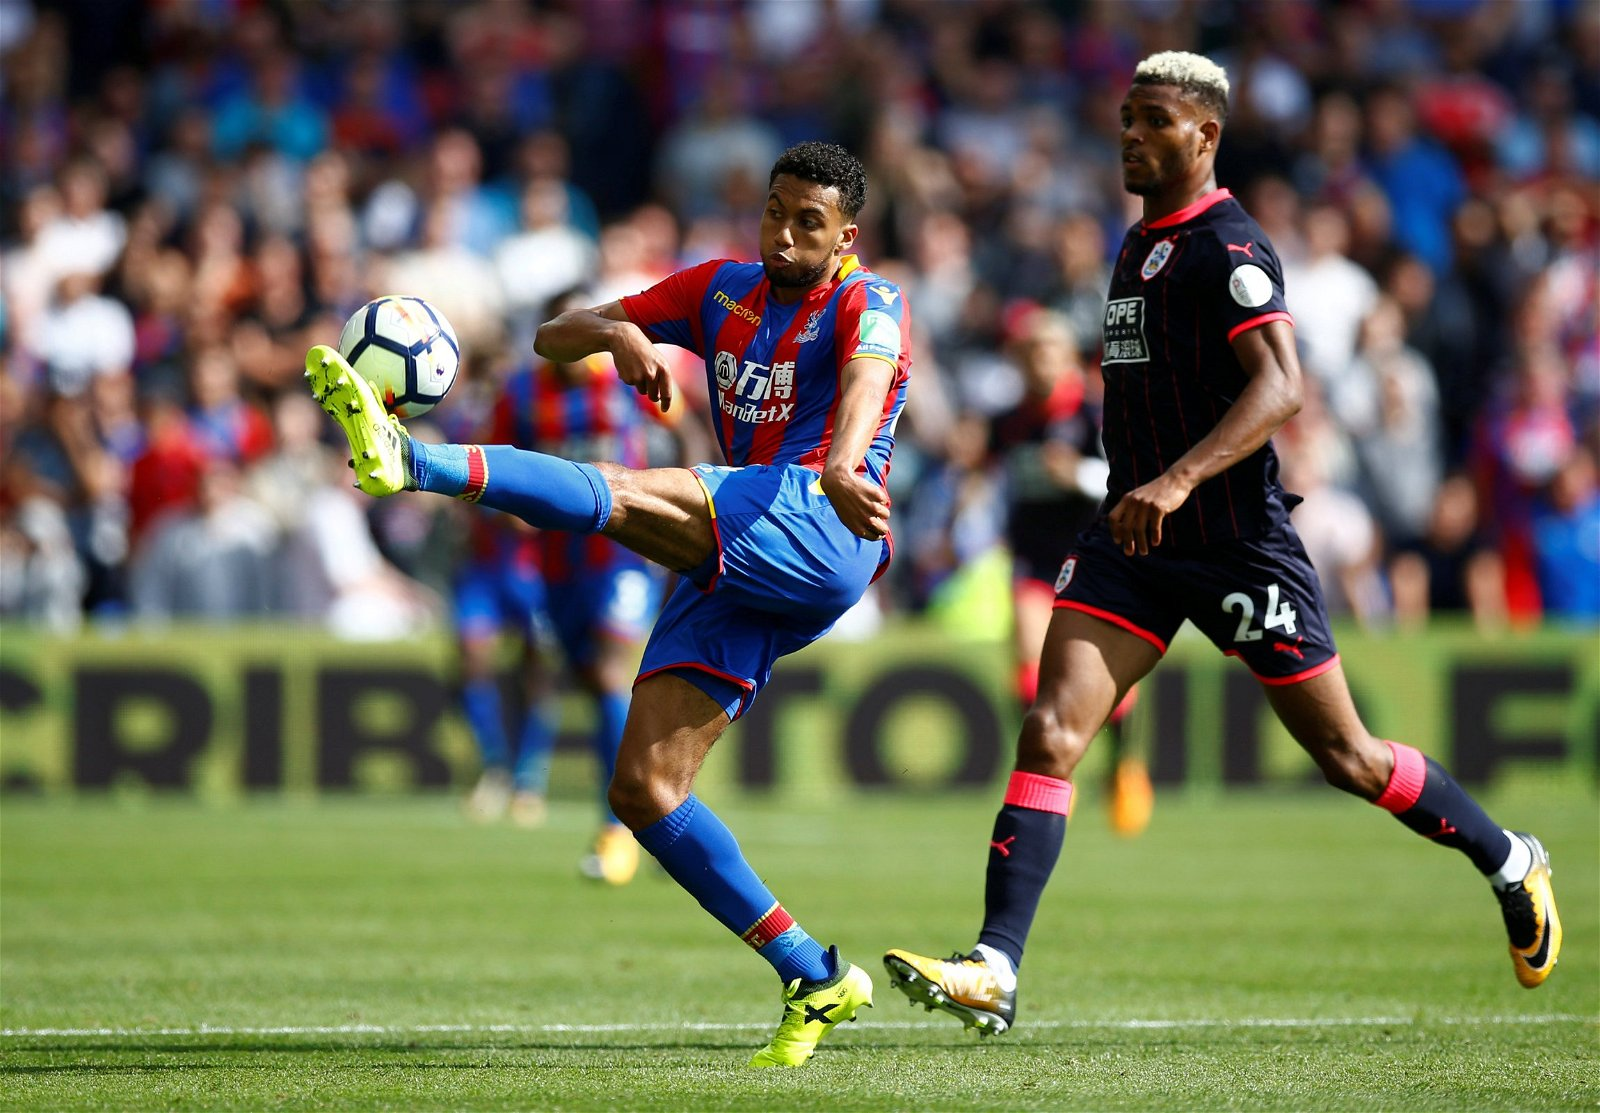 Jairo Riedewald swings at the ball during Crystal Palace's clash against Huddersfield Town